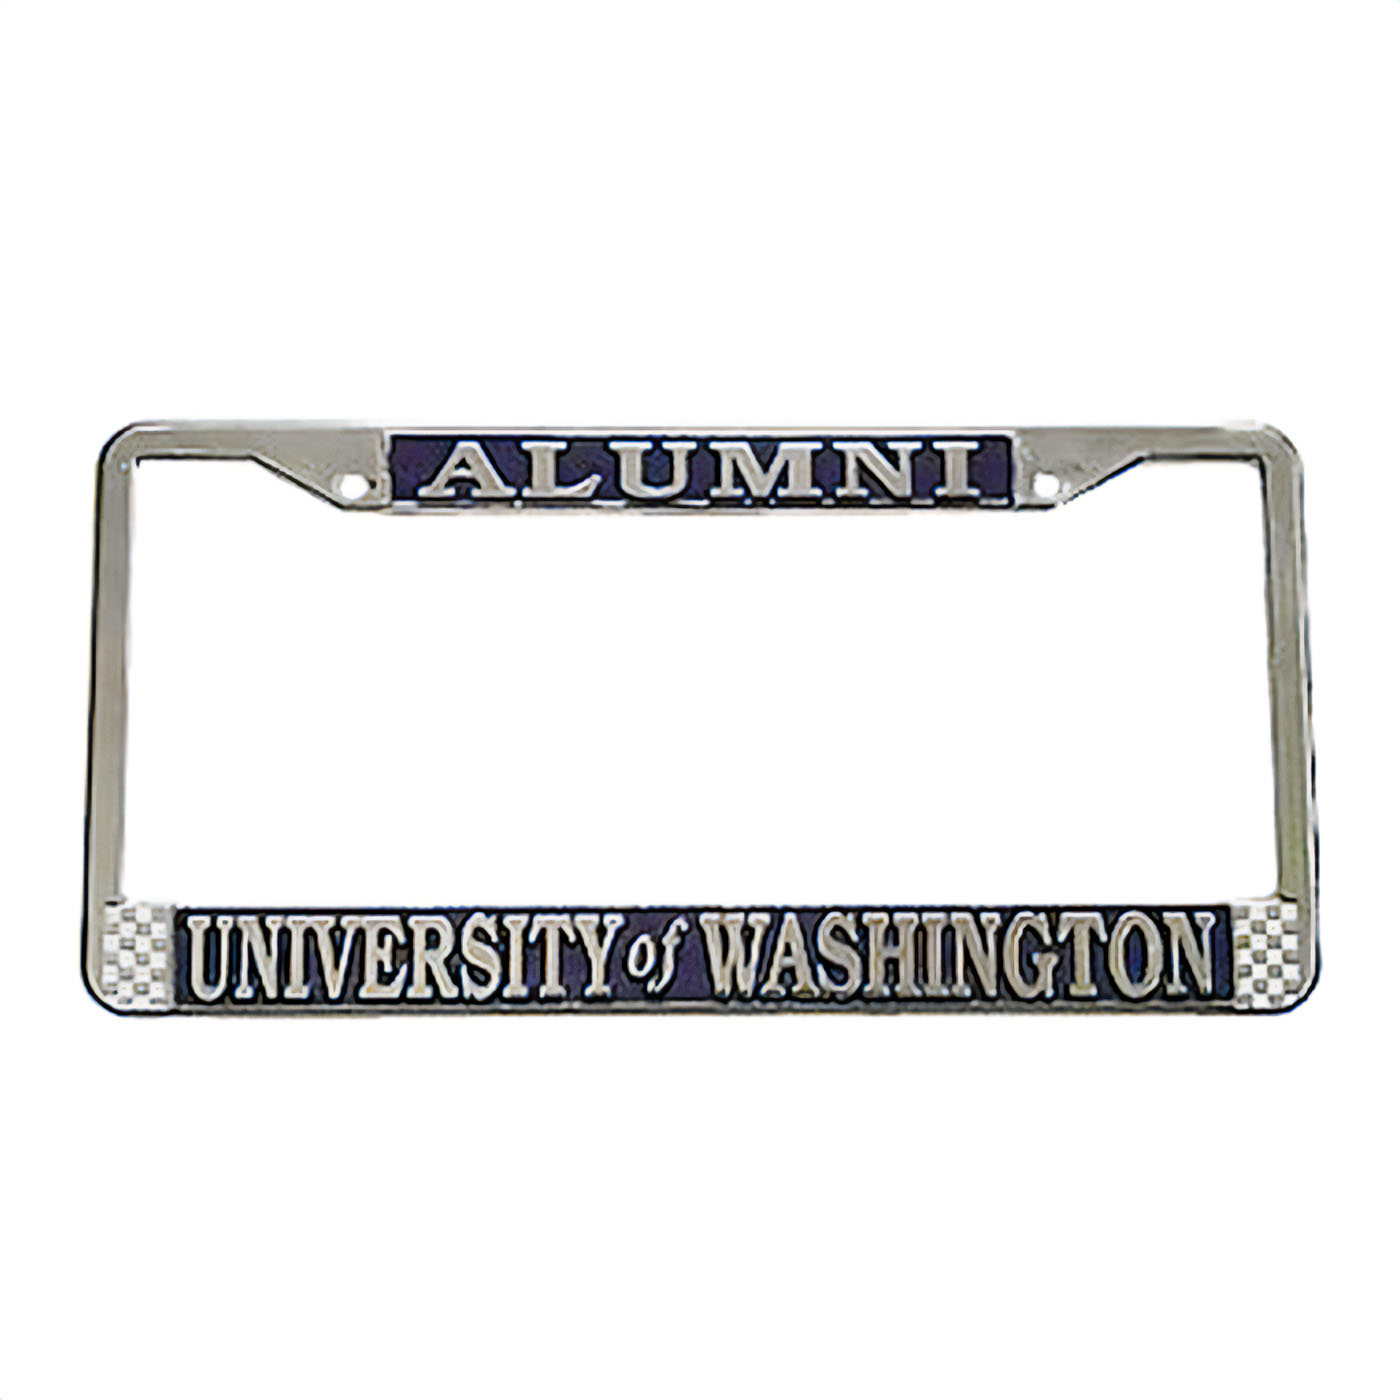 Chrome Alumni University of Washington License Plate Frame